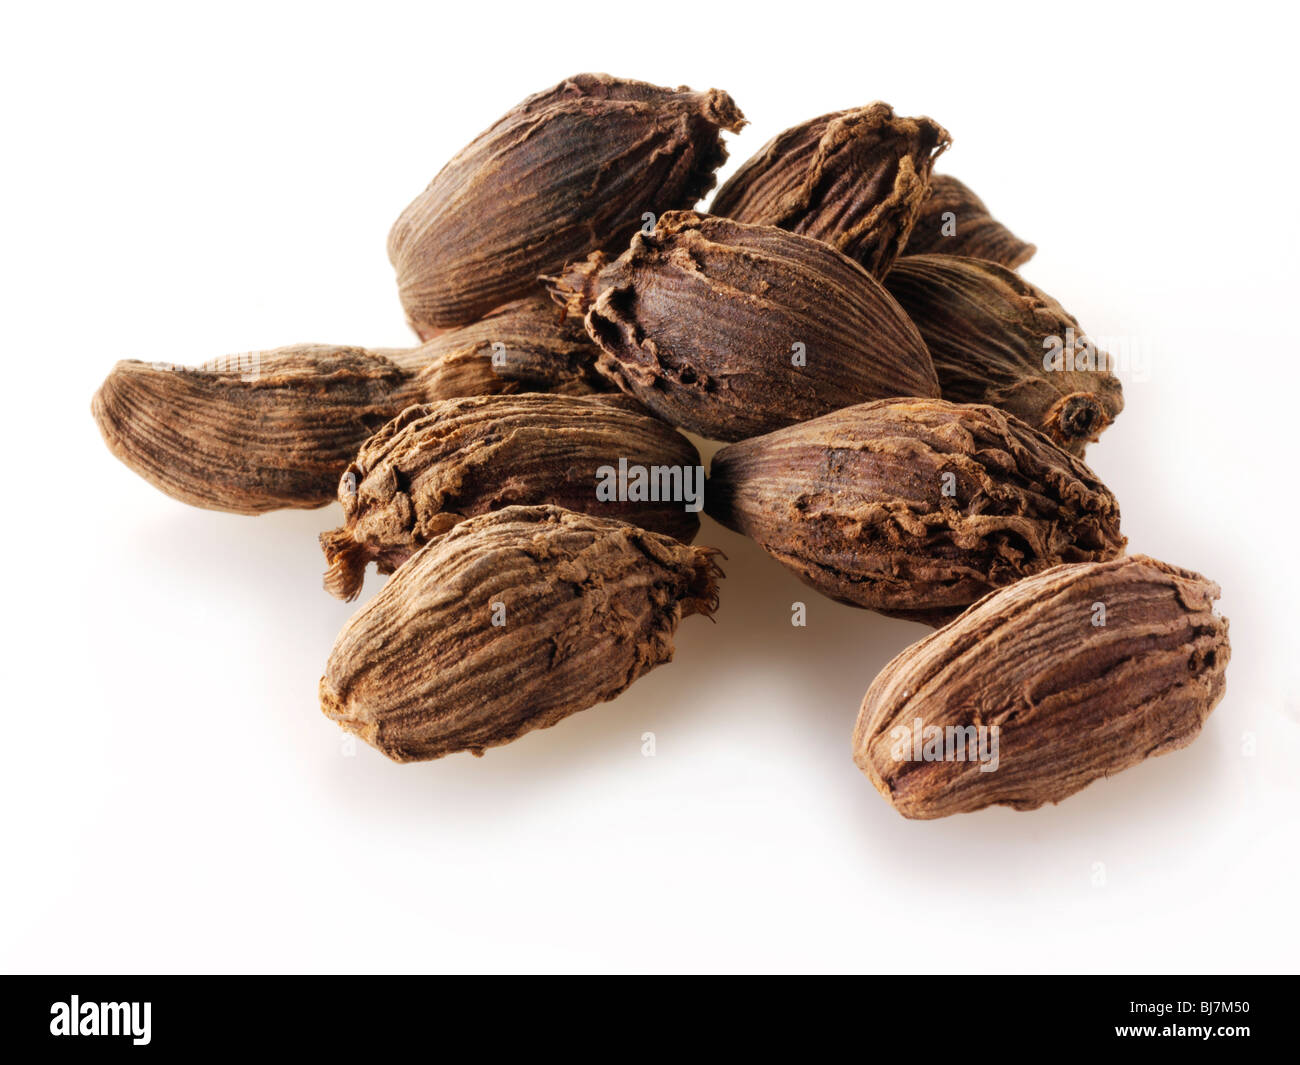 Whole black cardamoms spices  composed arrangement isolated against a white background - Stock Image